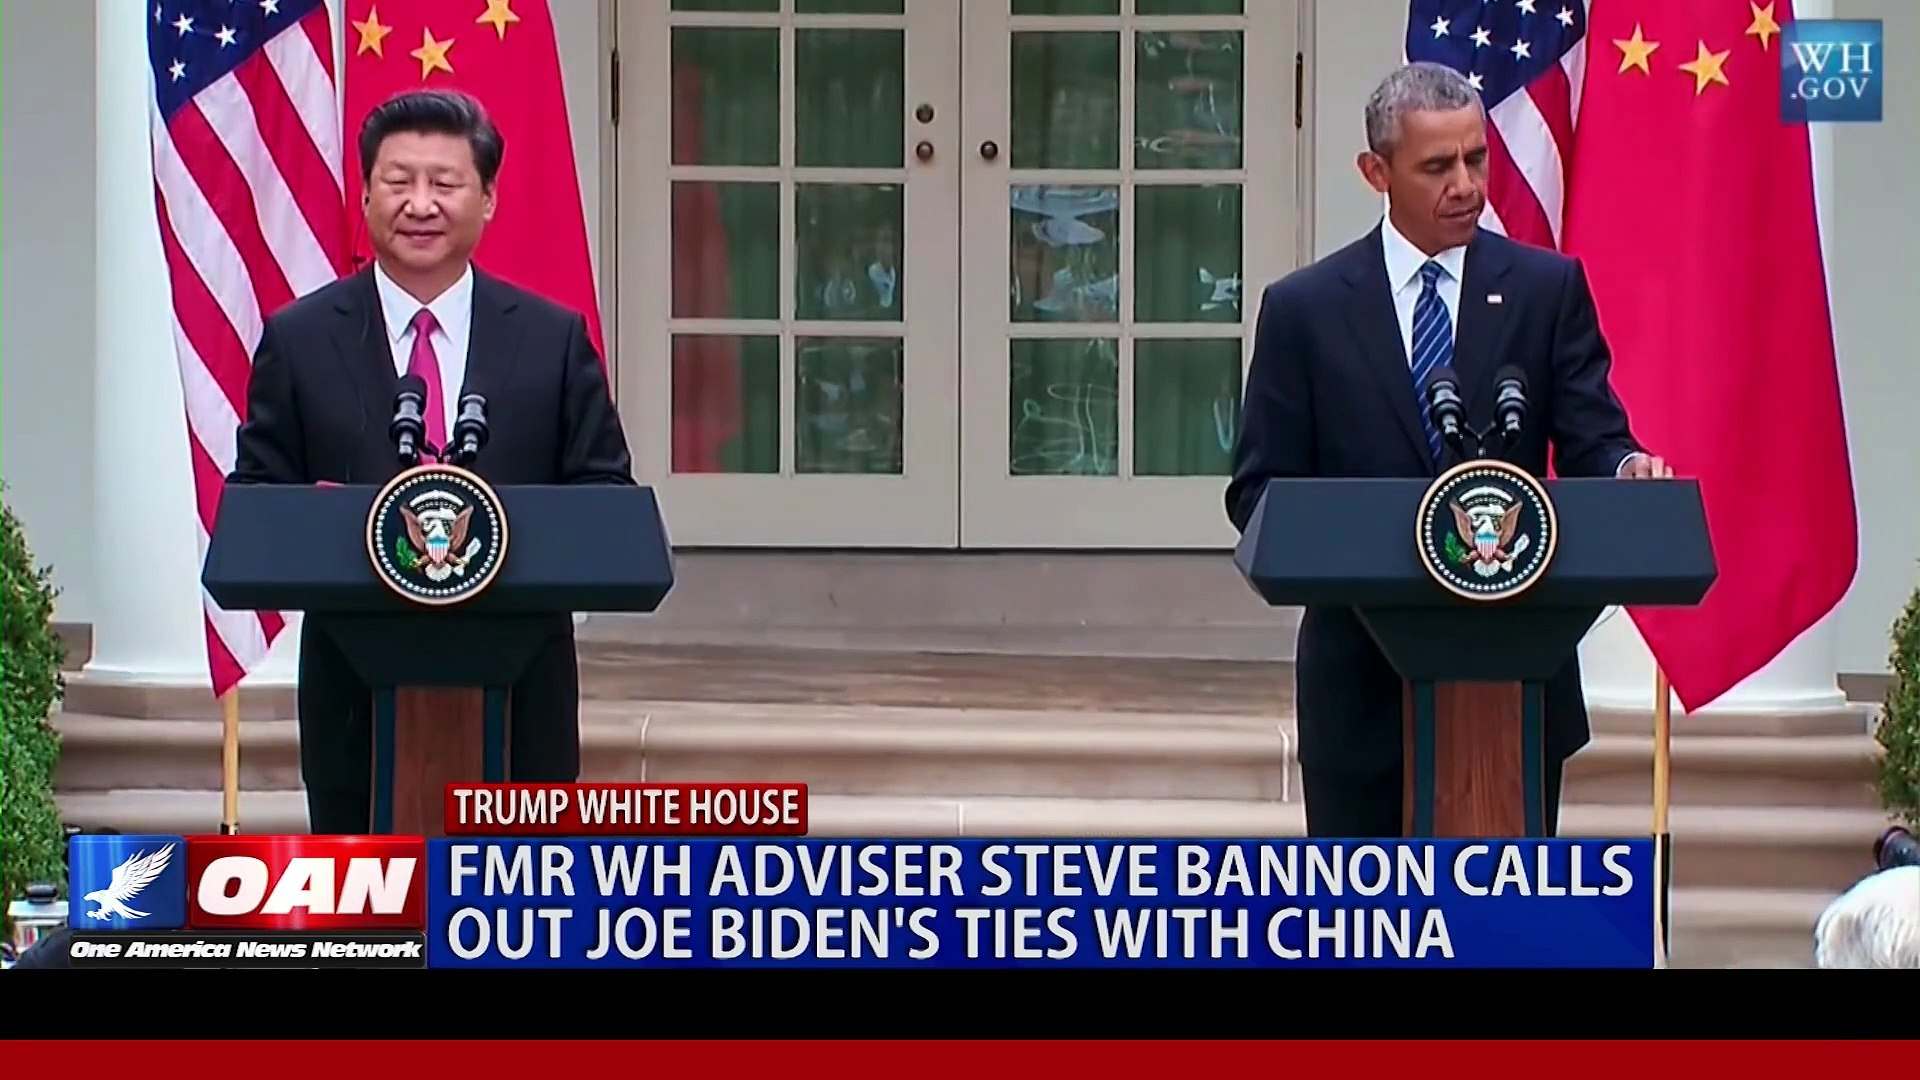 2019 APR 26 Former White House adviser Steven Bannon calls out Joe Biden's ties with China